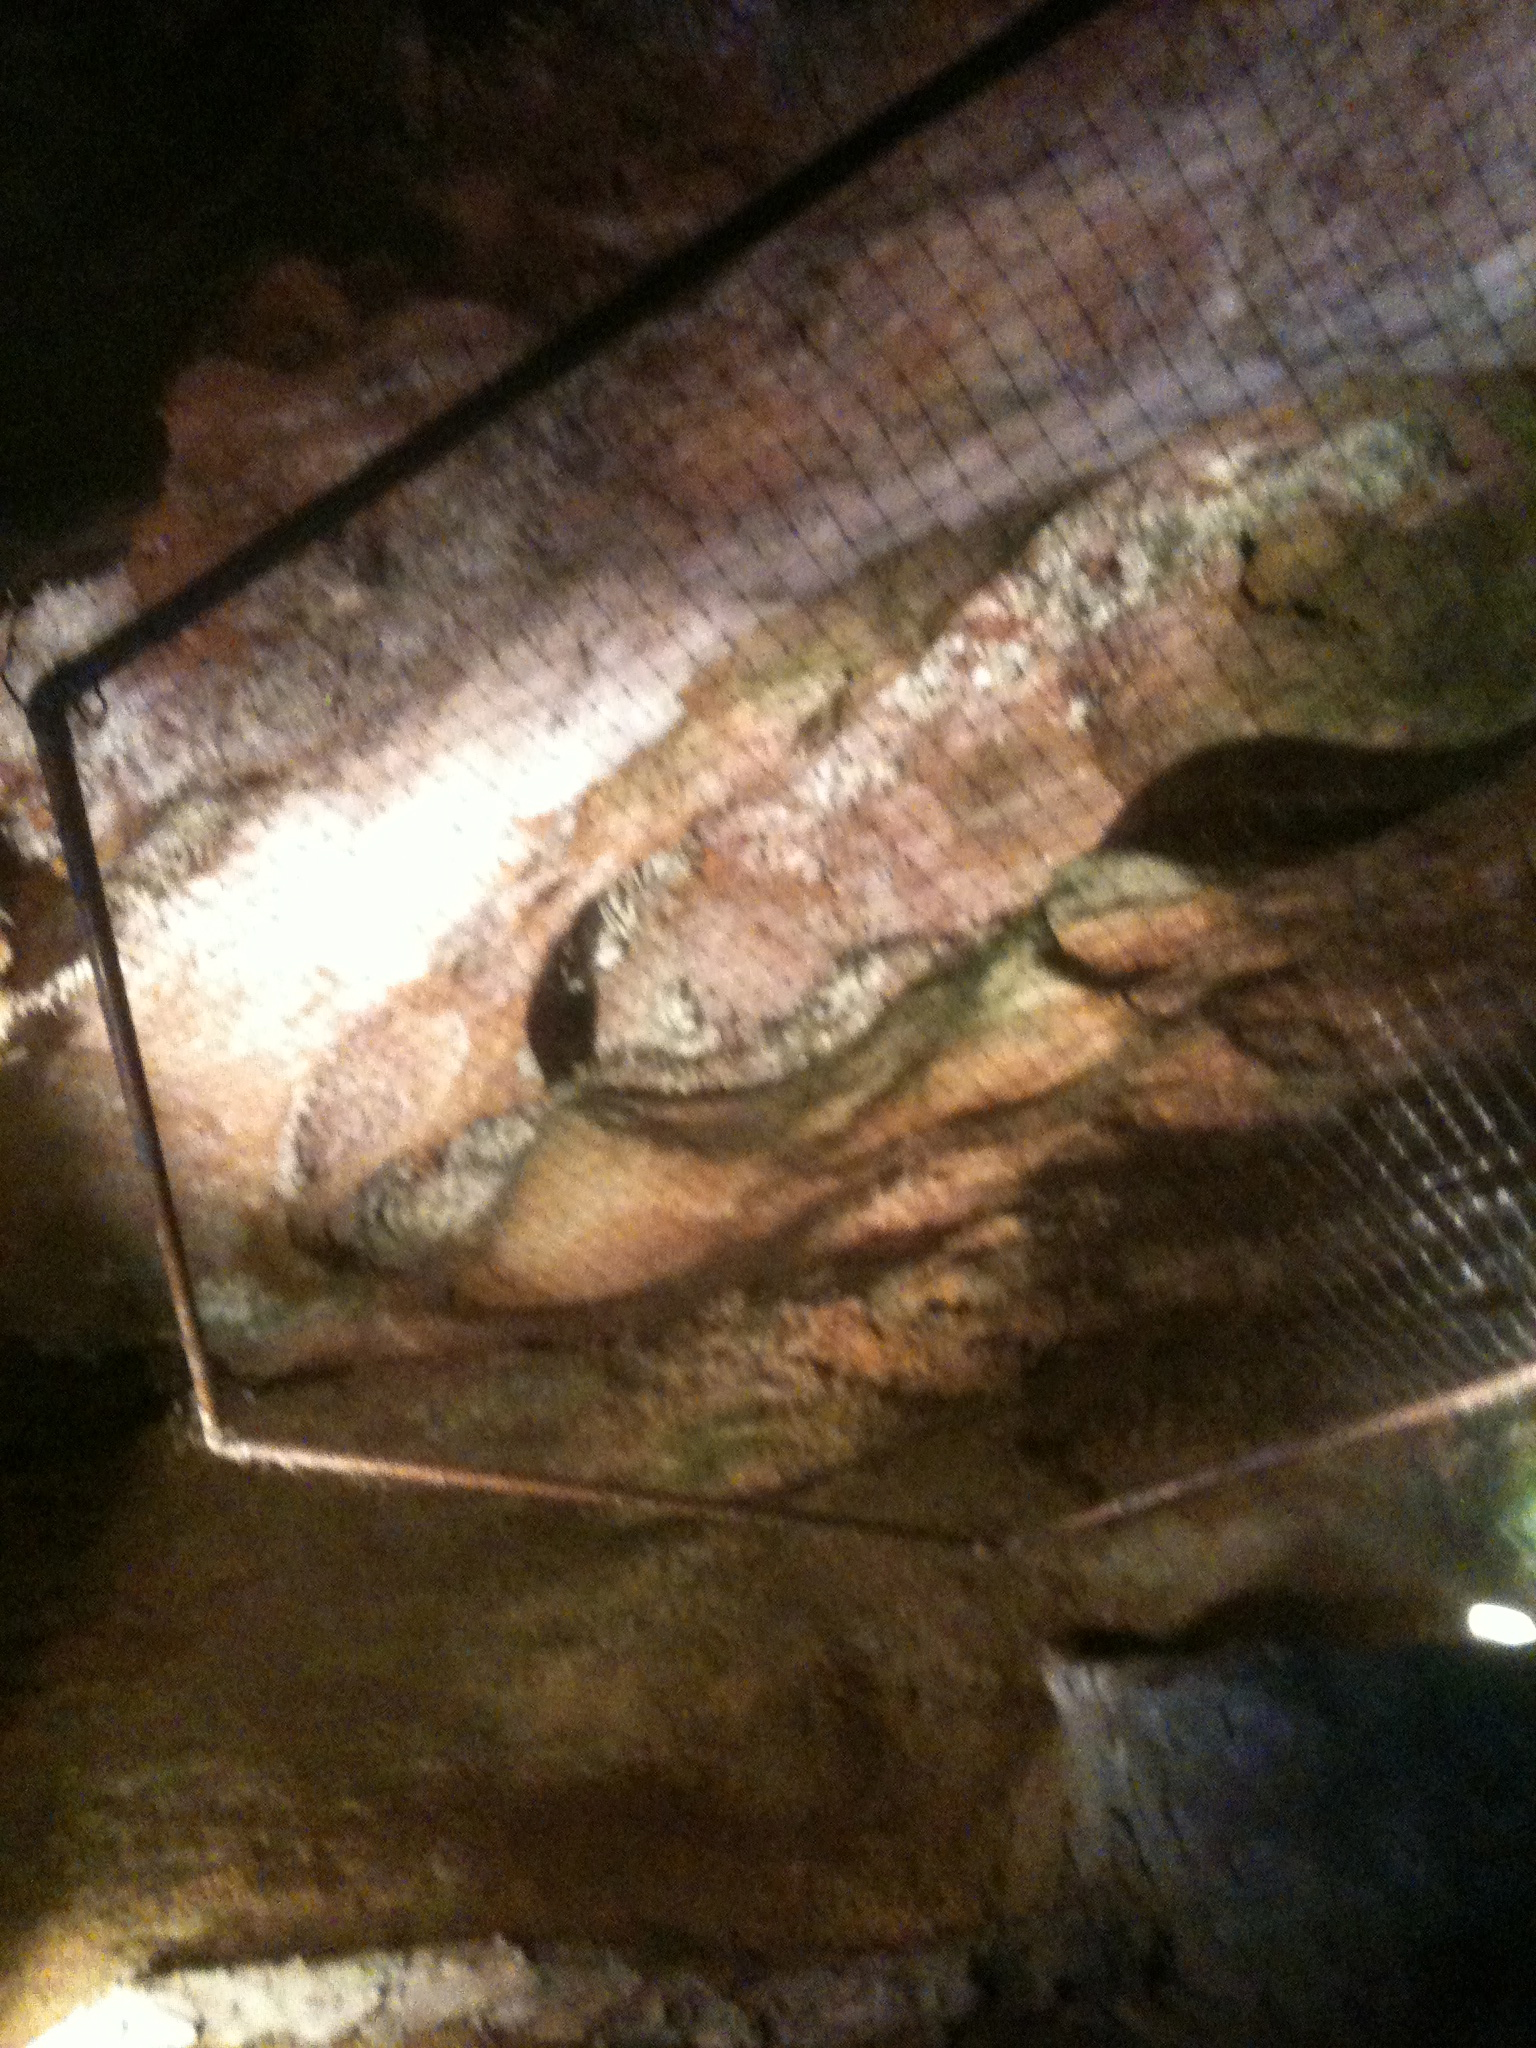 anothodites in the cavern